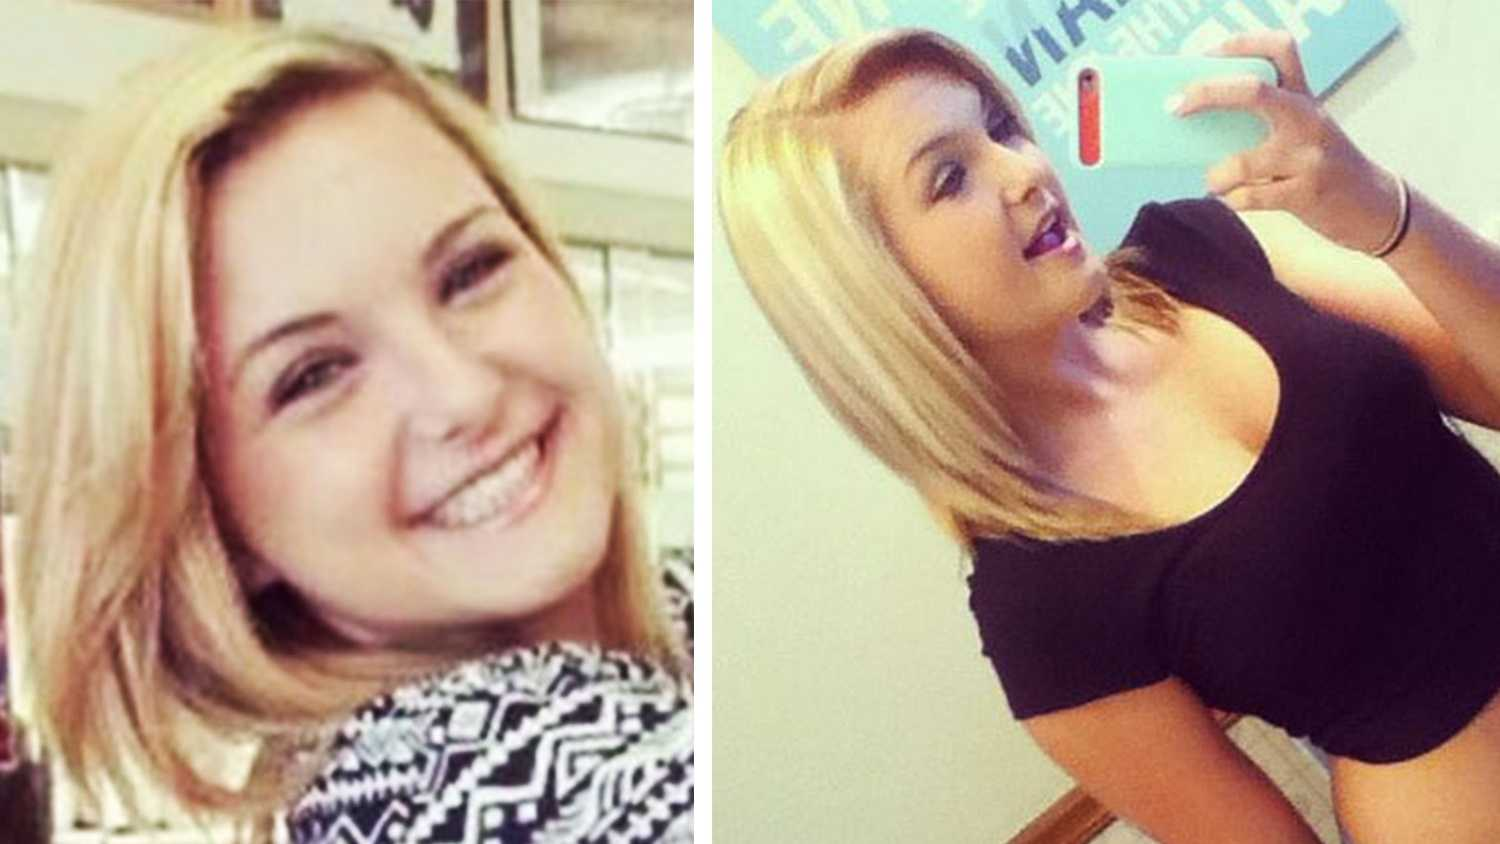 Hannah Anderson, 16, was rescued after a 6-day Amber Alert.